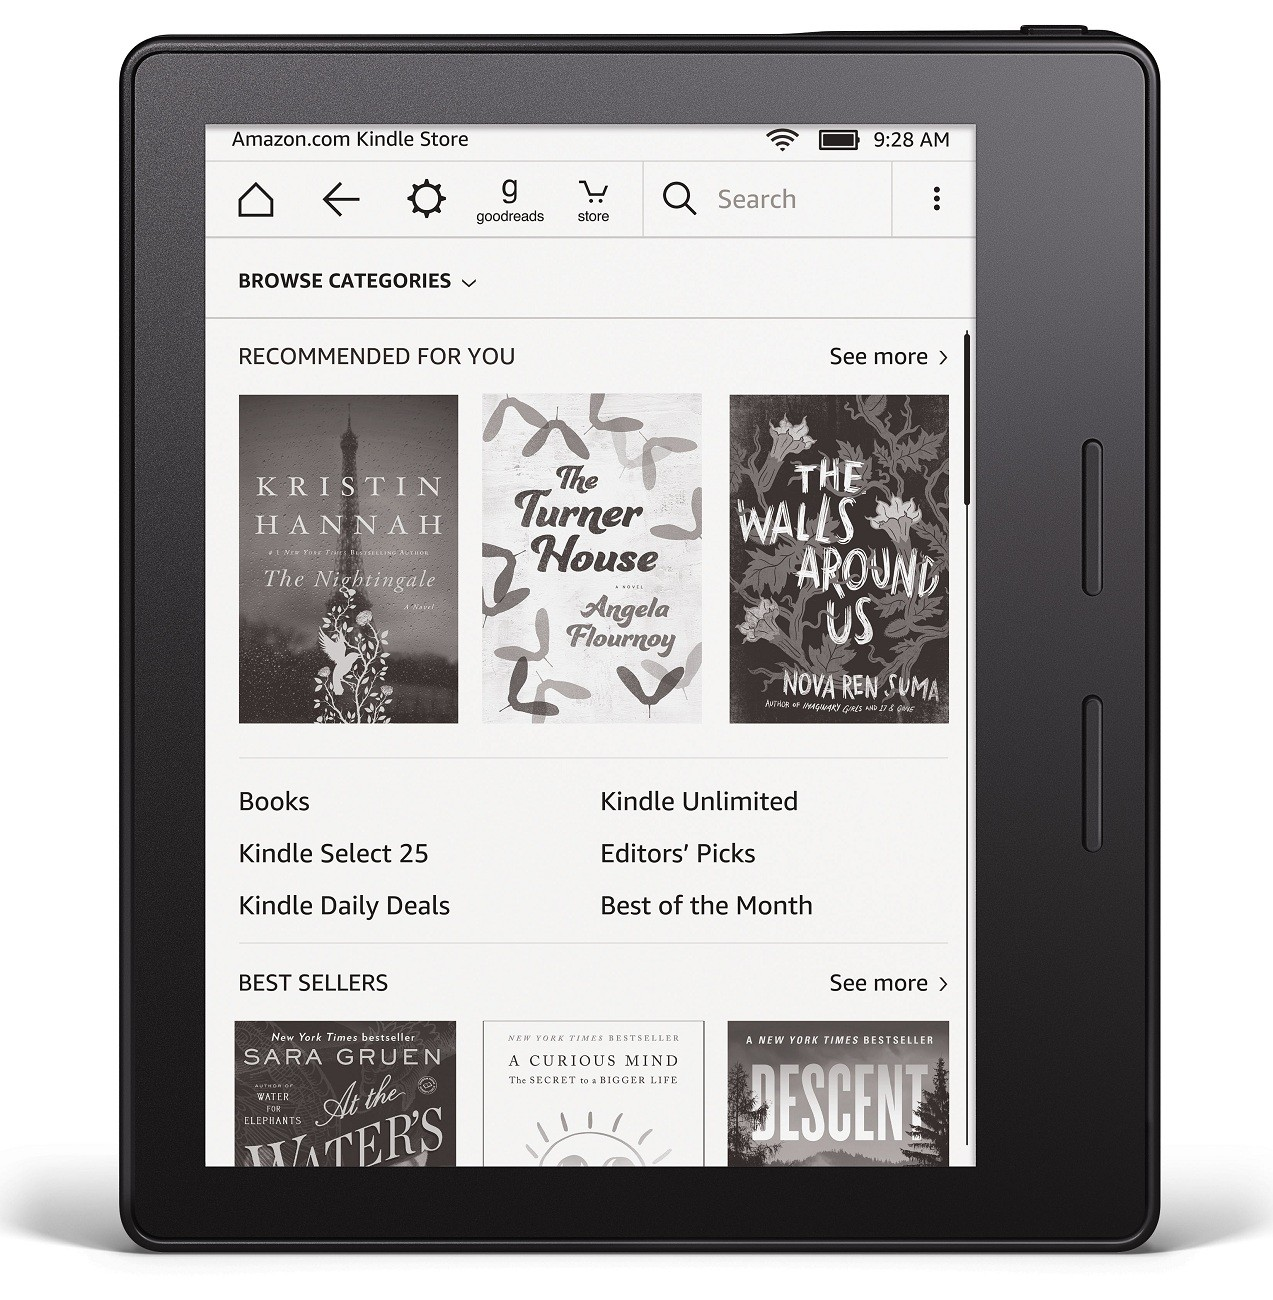 Amazon's latest Kindle mostly wants to disappear - Science & Tech